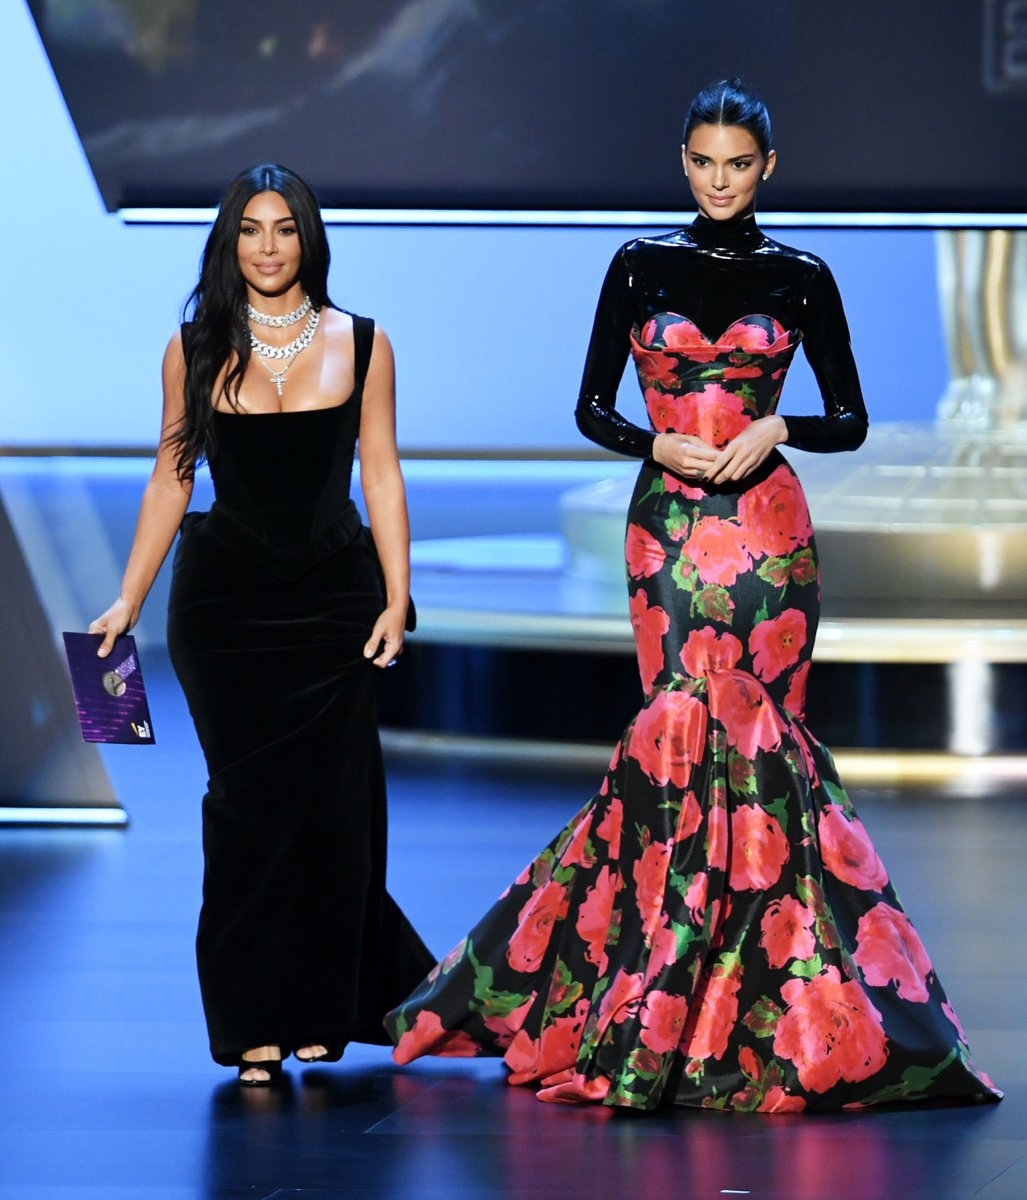 Kim & Kendall presenting at the Emmy's in Los Angeles, CA on September 22, 2019.